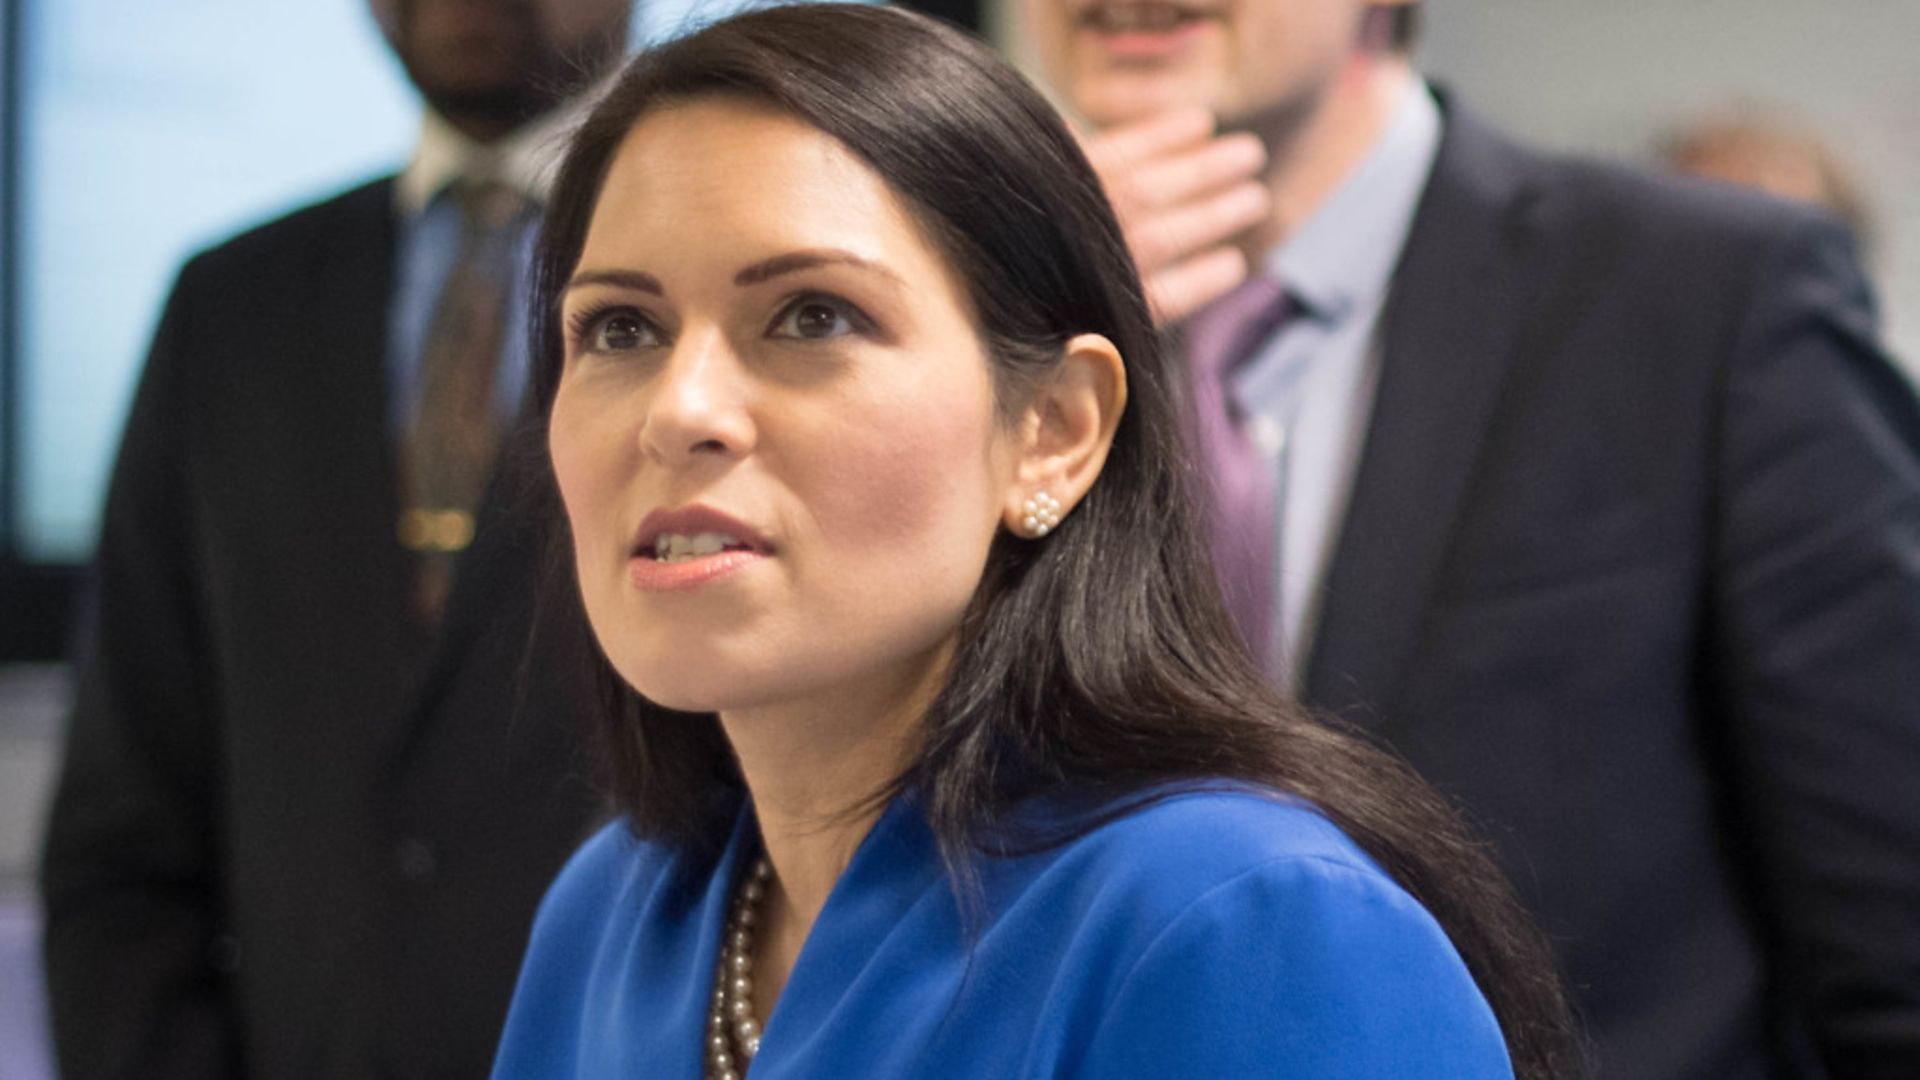 Home secretary Priti Patel asked staff to explore building an asylum seeker processing centre on Ascension Island - Credit: Stefan Rousseau/PA Wire.